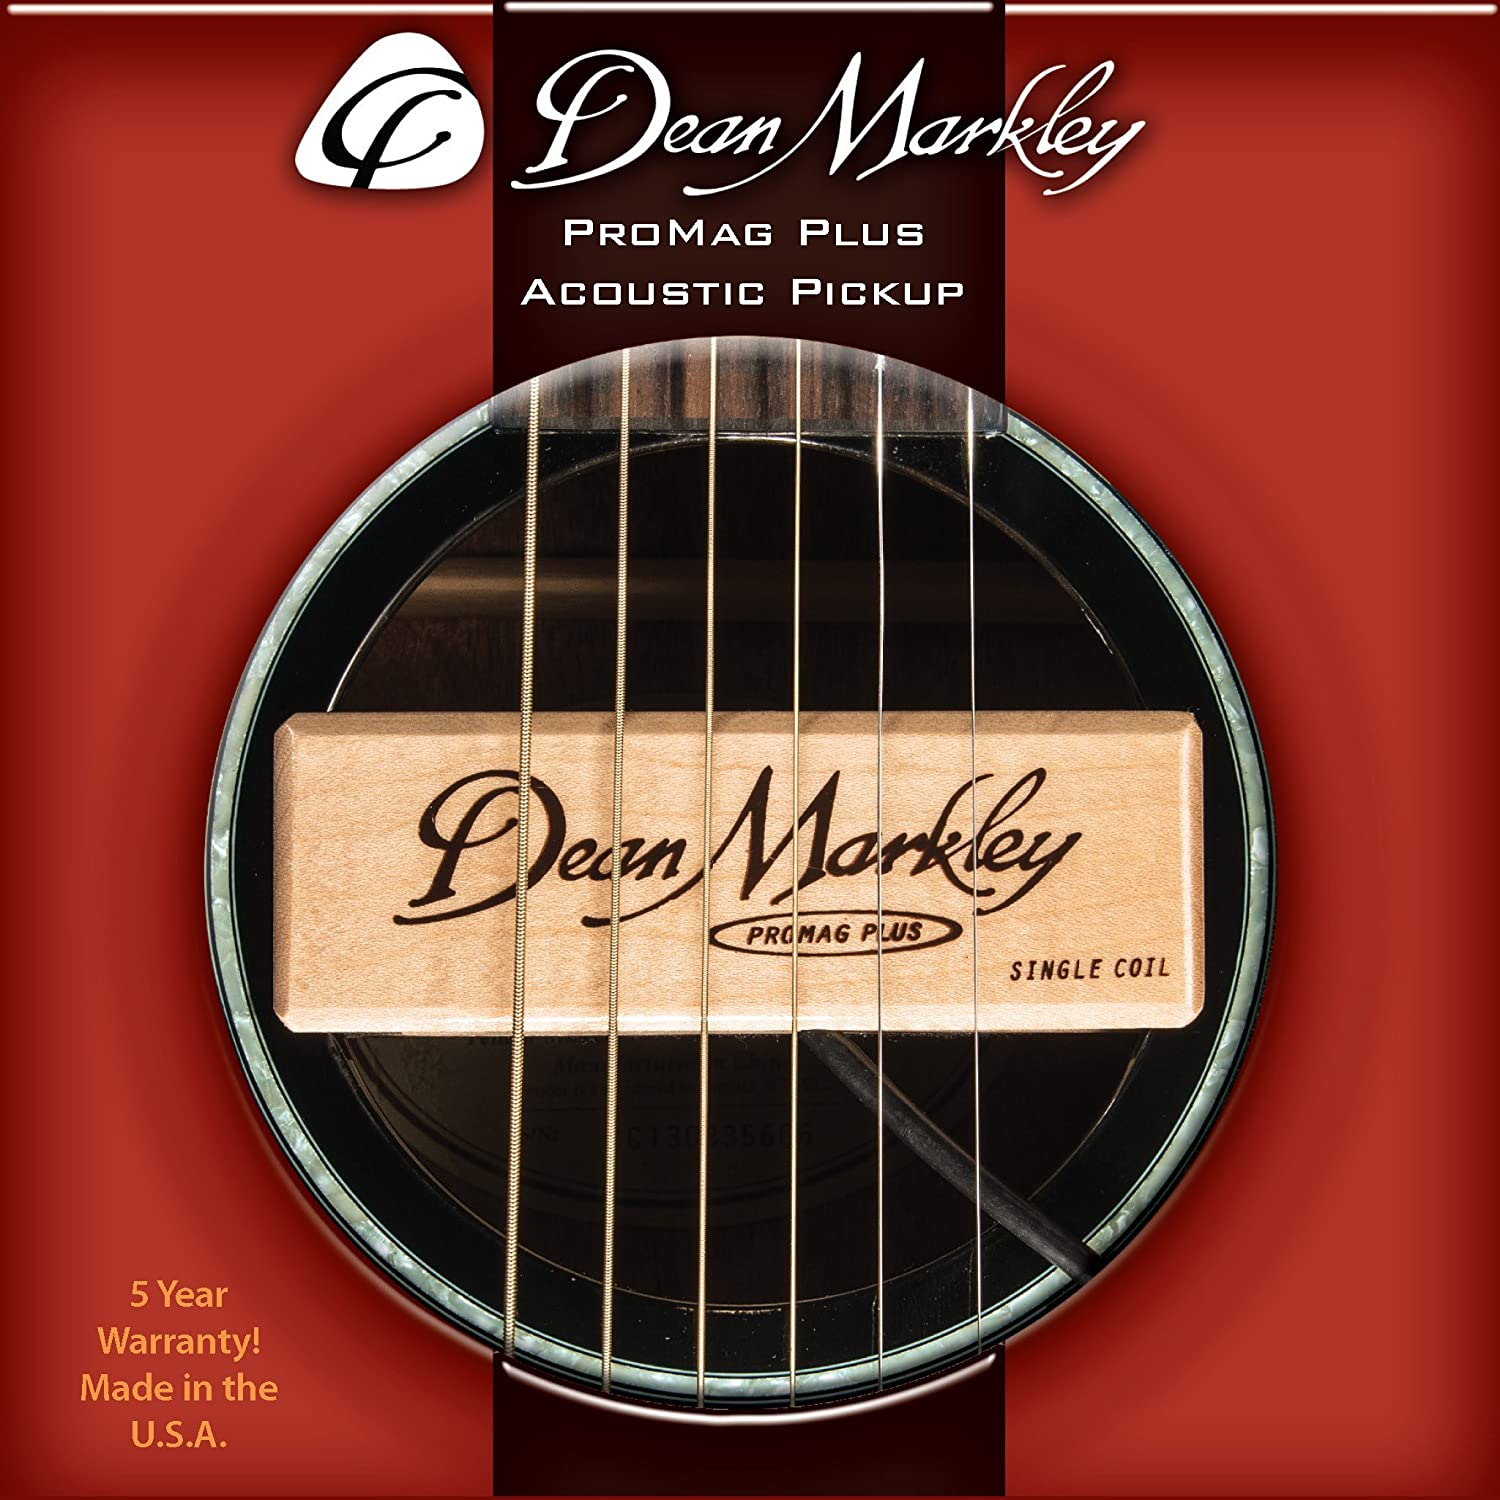 Dean Markley Pro Mag Grand Acoustic Guitar Pickup on